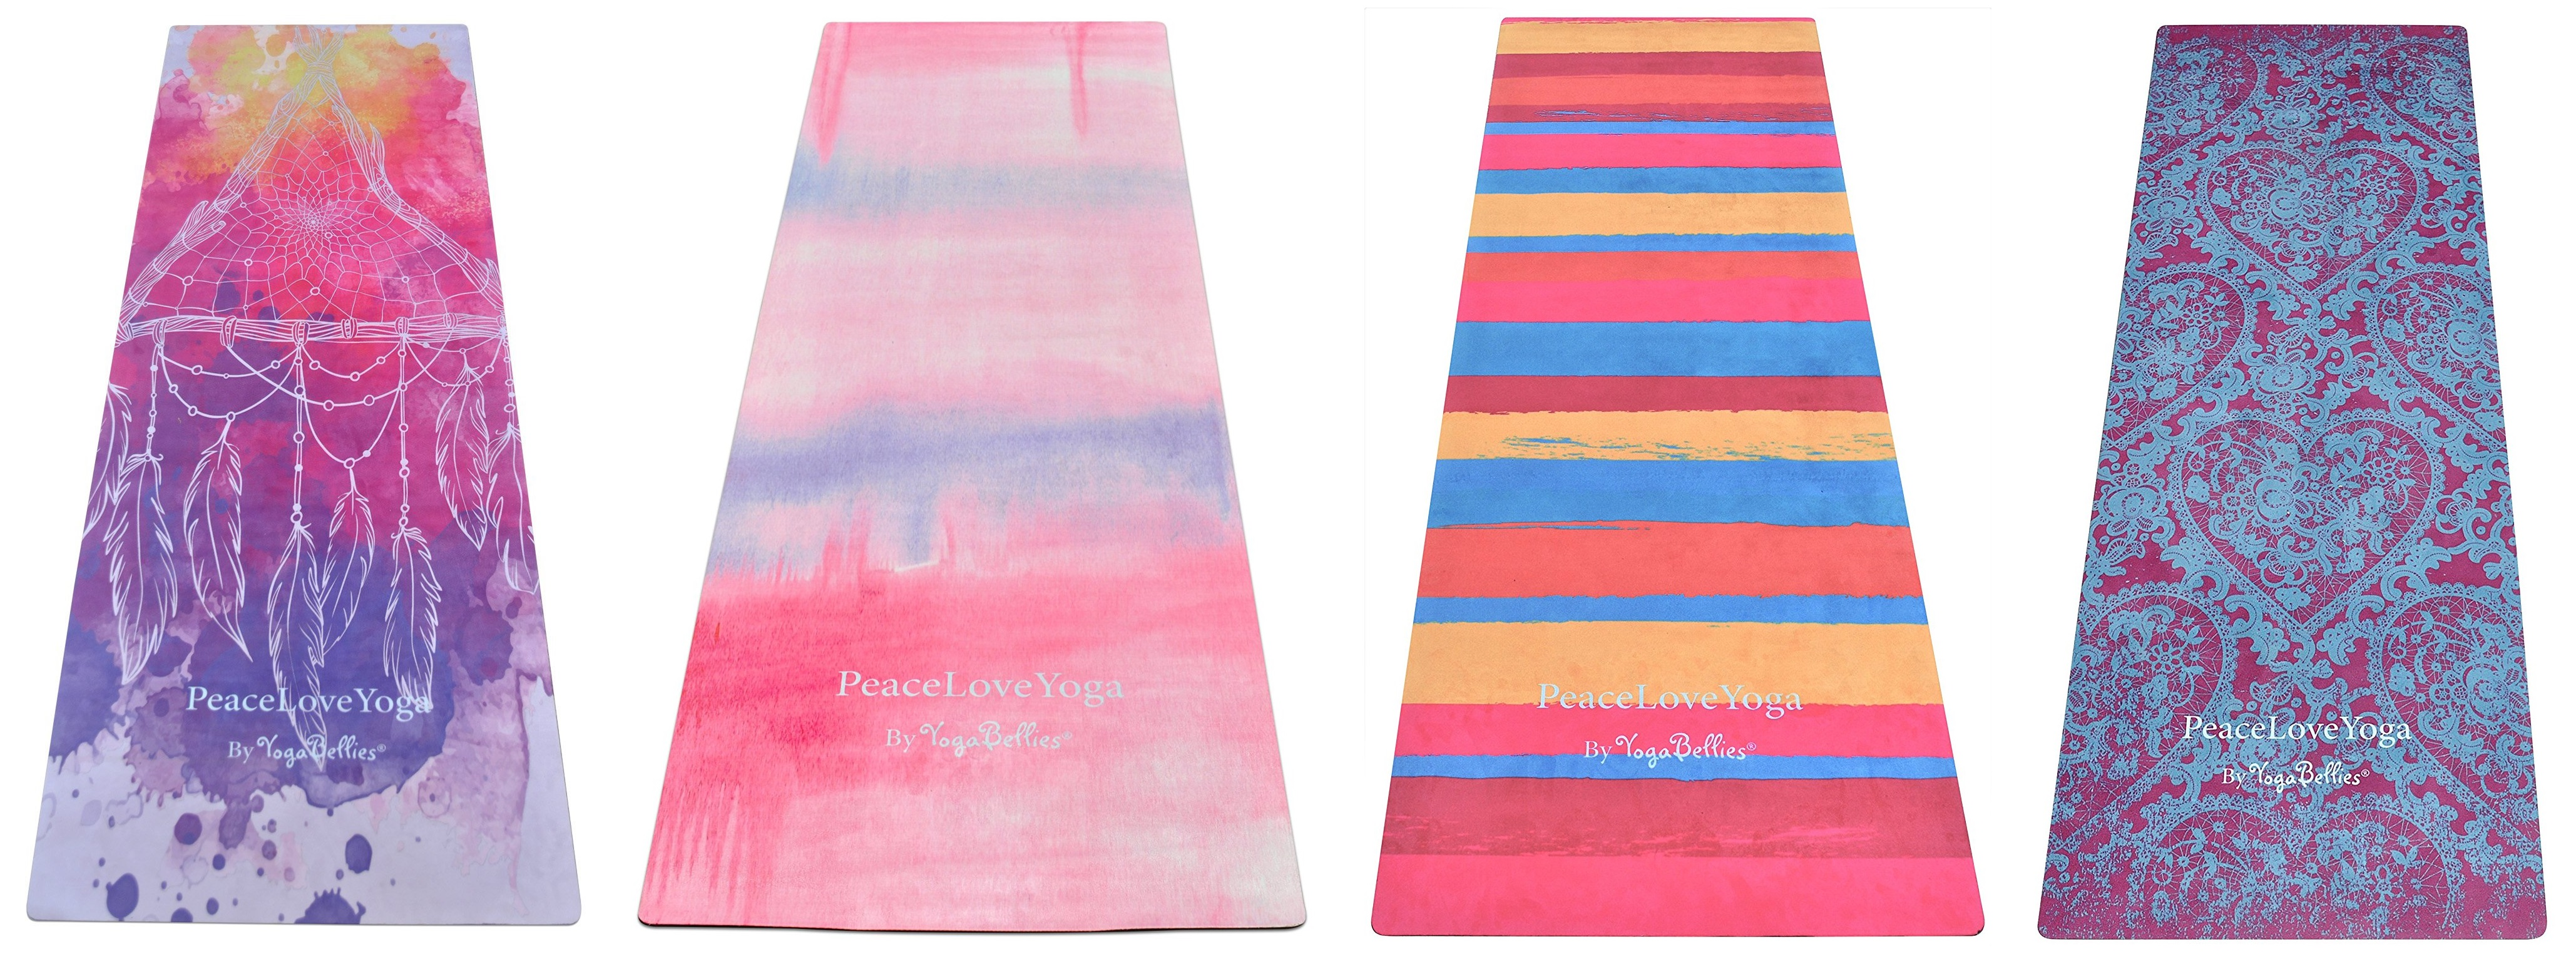 peaceloveyoga pretty yoga mat